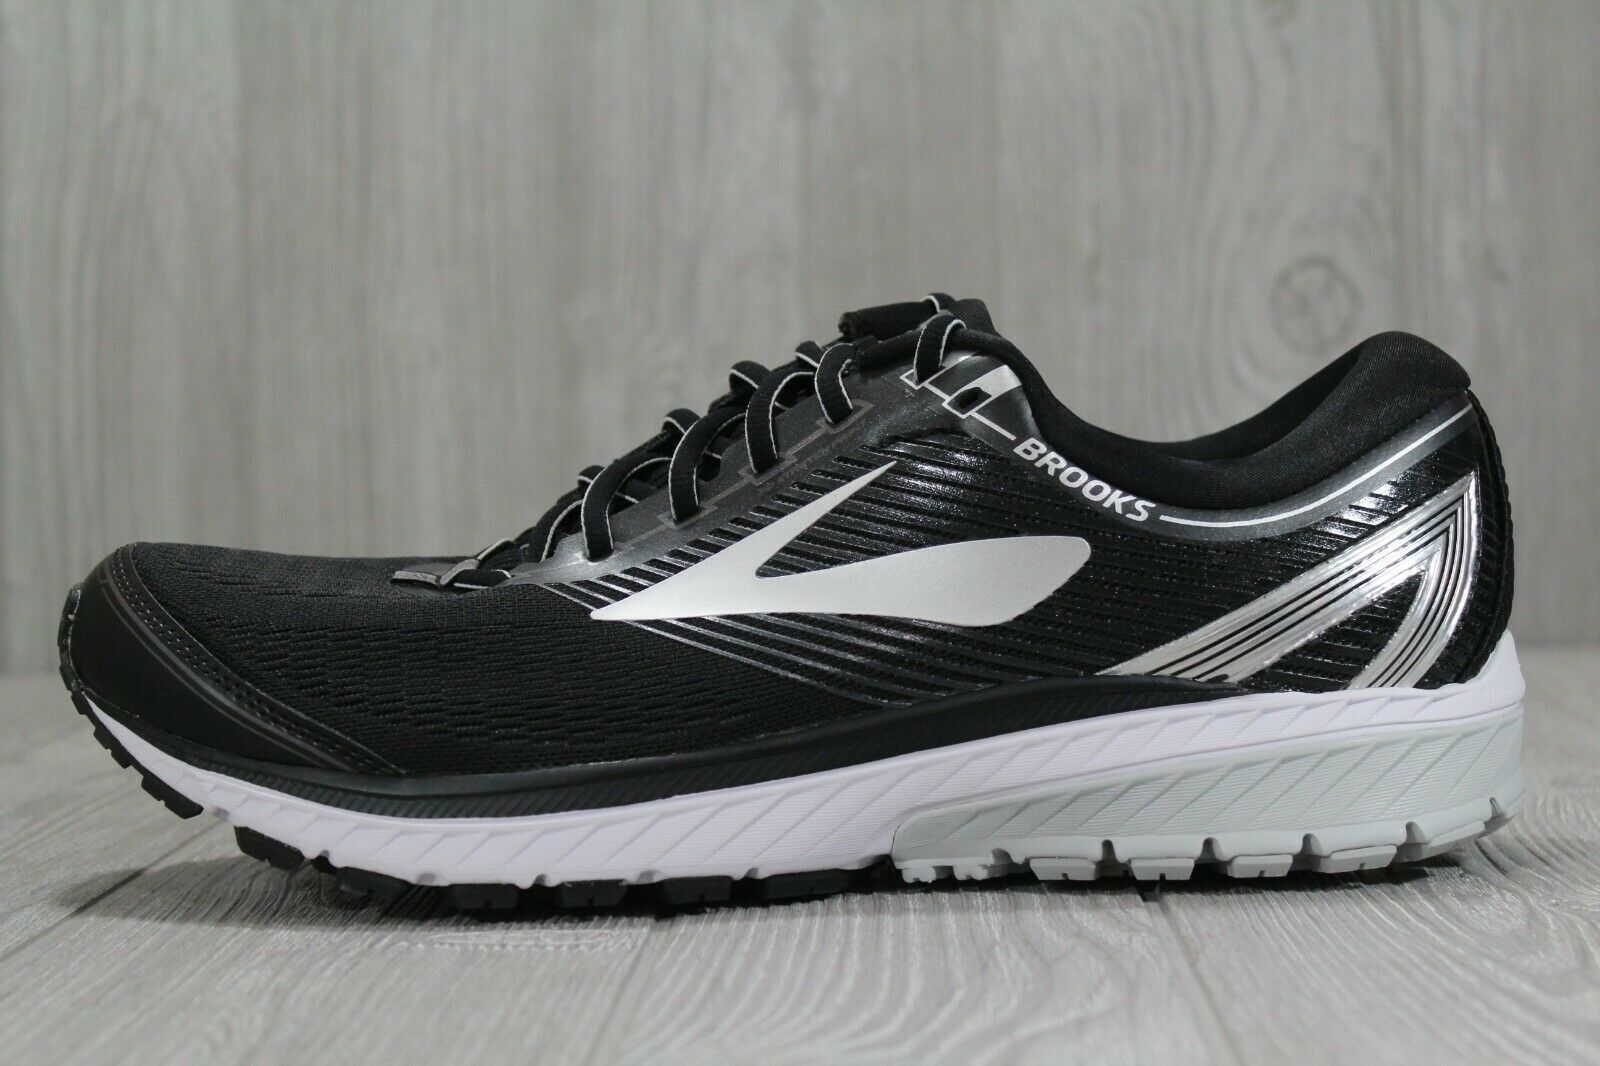 39 Brooks Ghost 10 Men's Size 8.5, 14 Black Silver Athletic Running shoes